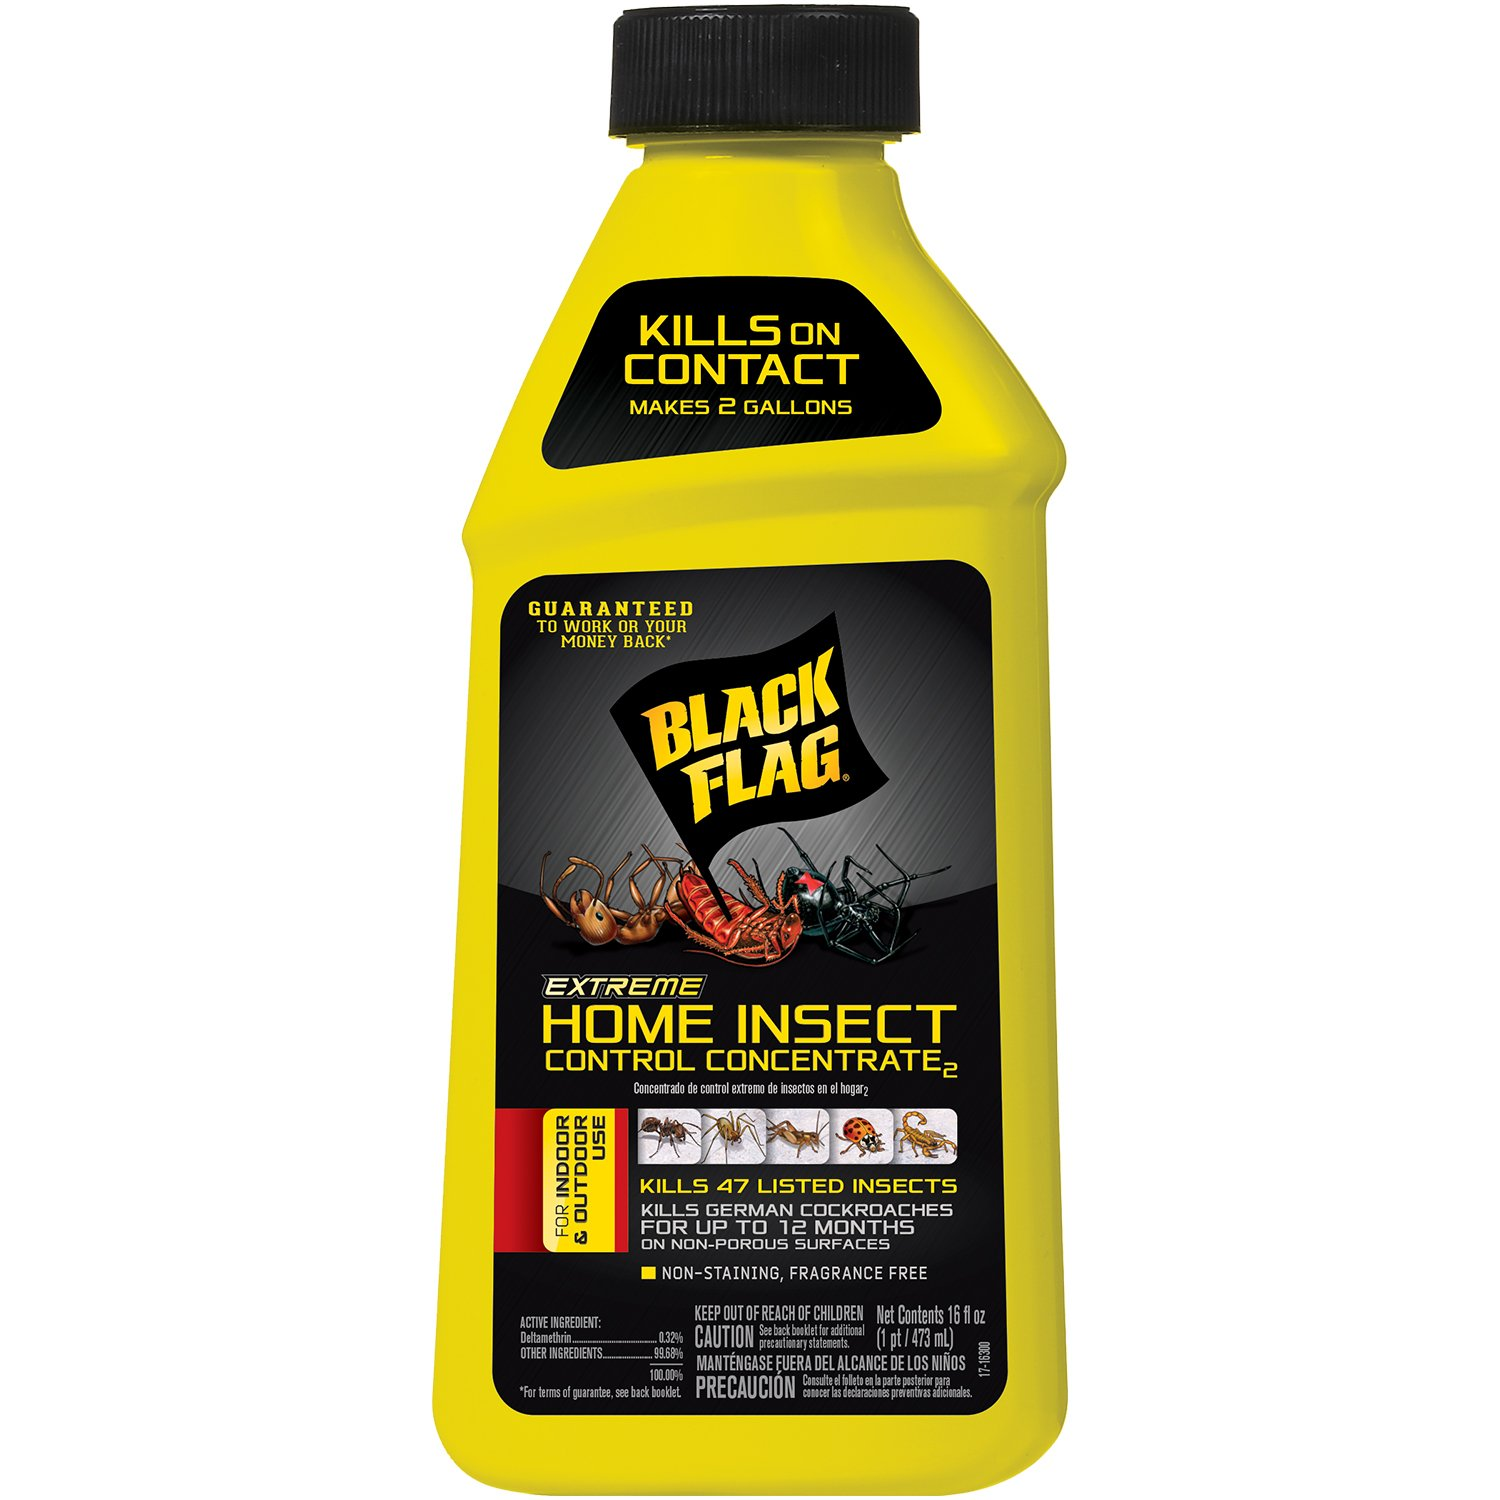 Black Flag HG-11010 Home Insect Control